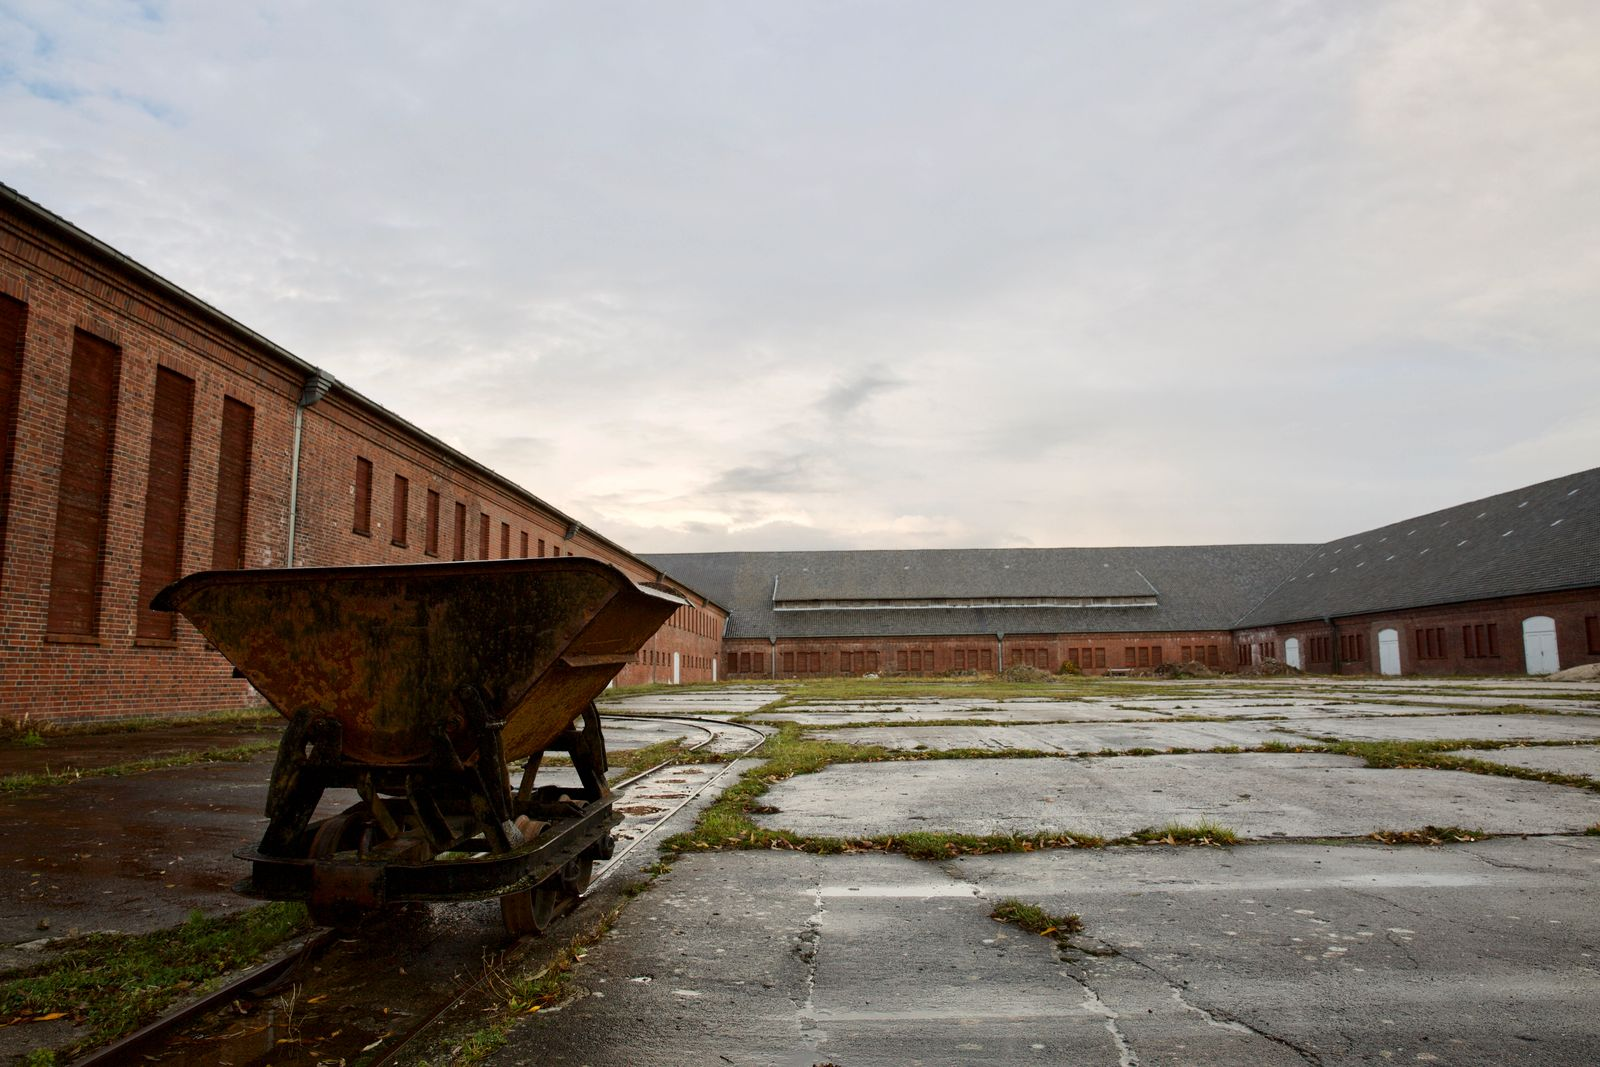 The Neuengamme Concentration Camp